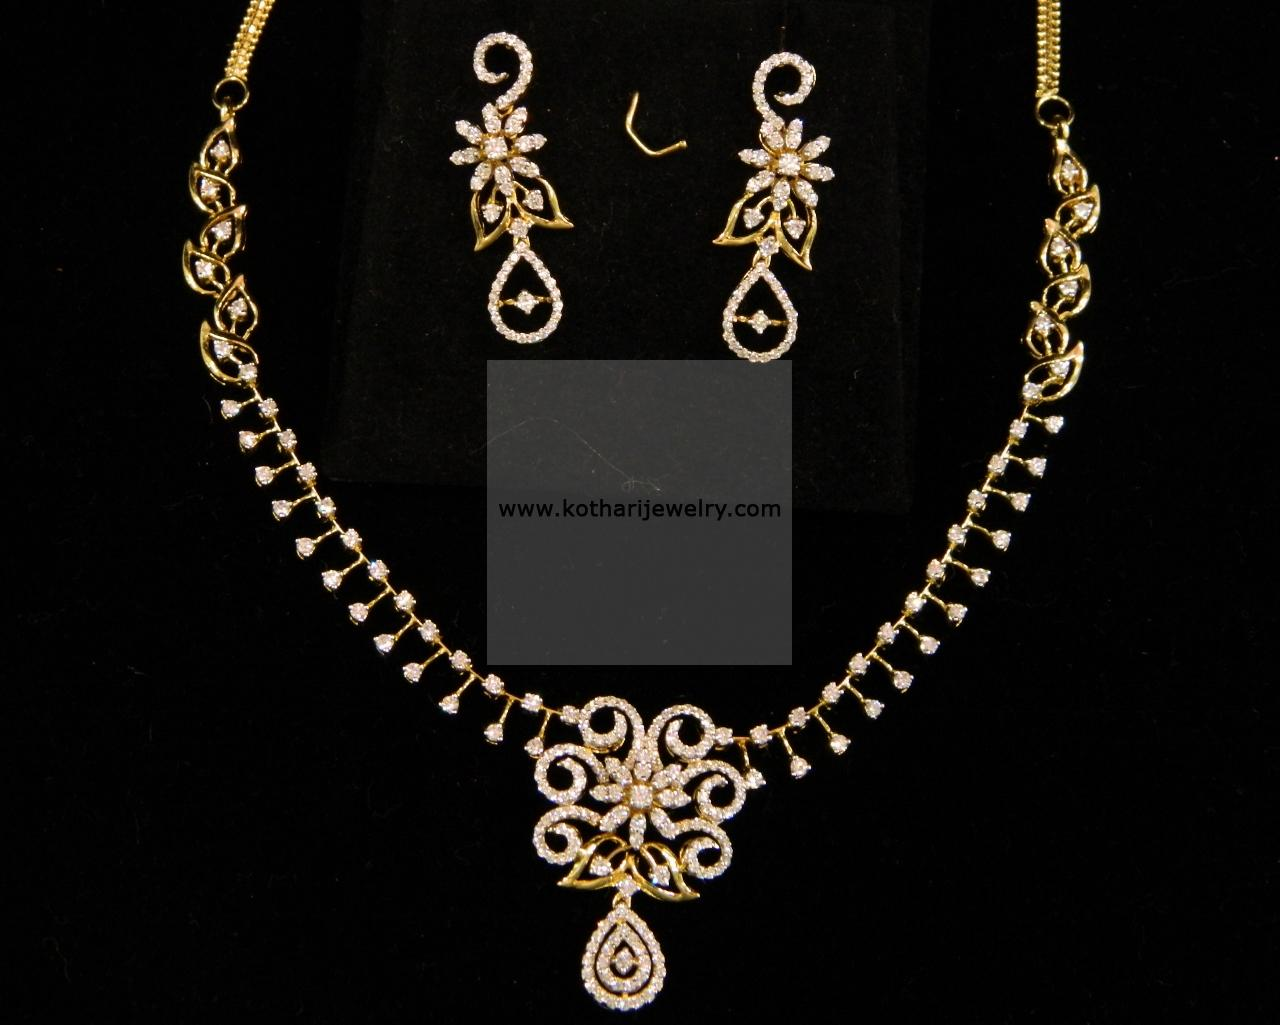 necklace vvs marquise diamond pin pan